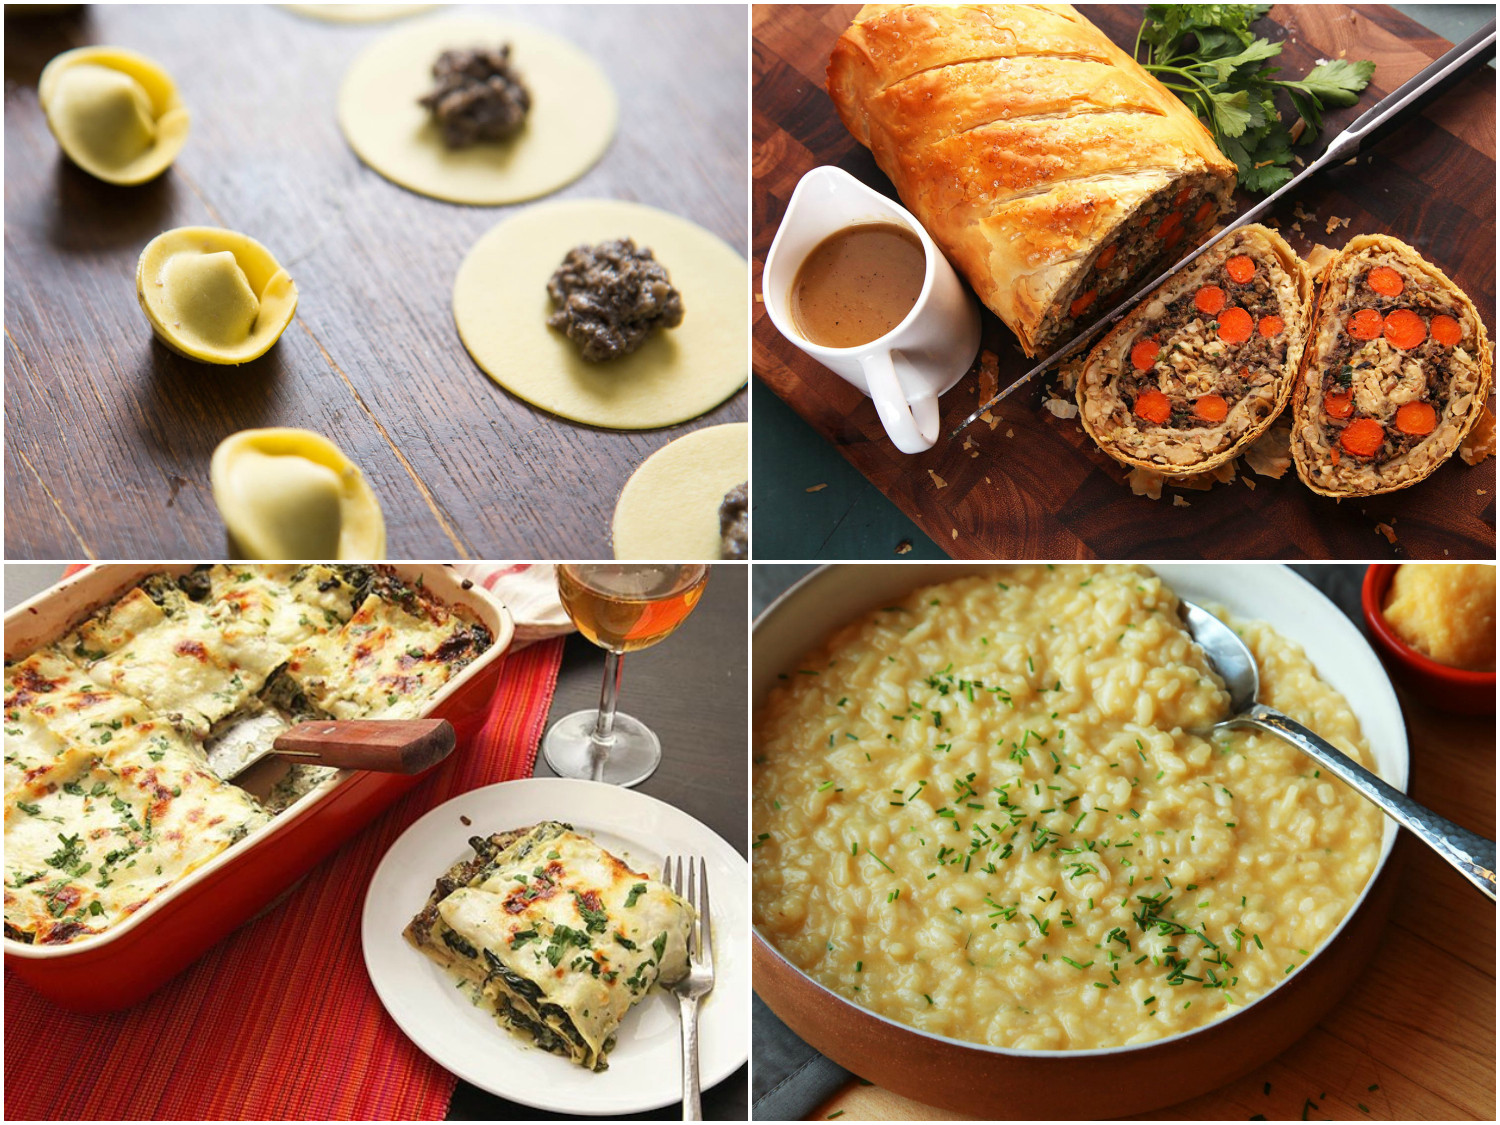 Vegetarian Main Dishes  13 Festive Ve arian Main Dishes That Even Omnivores Will